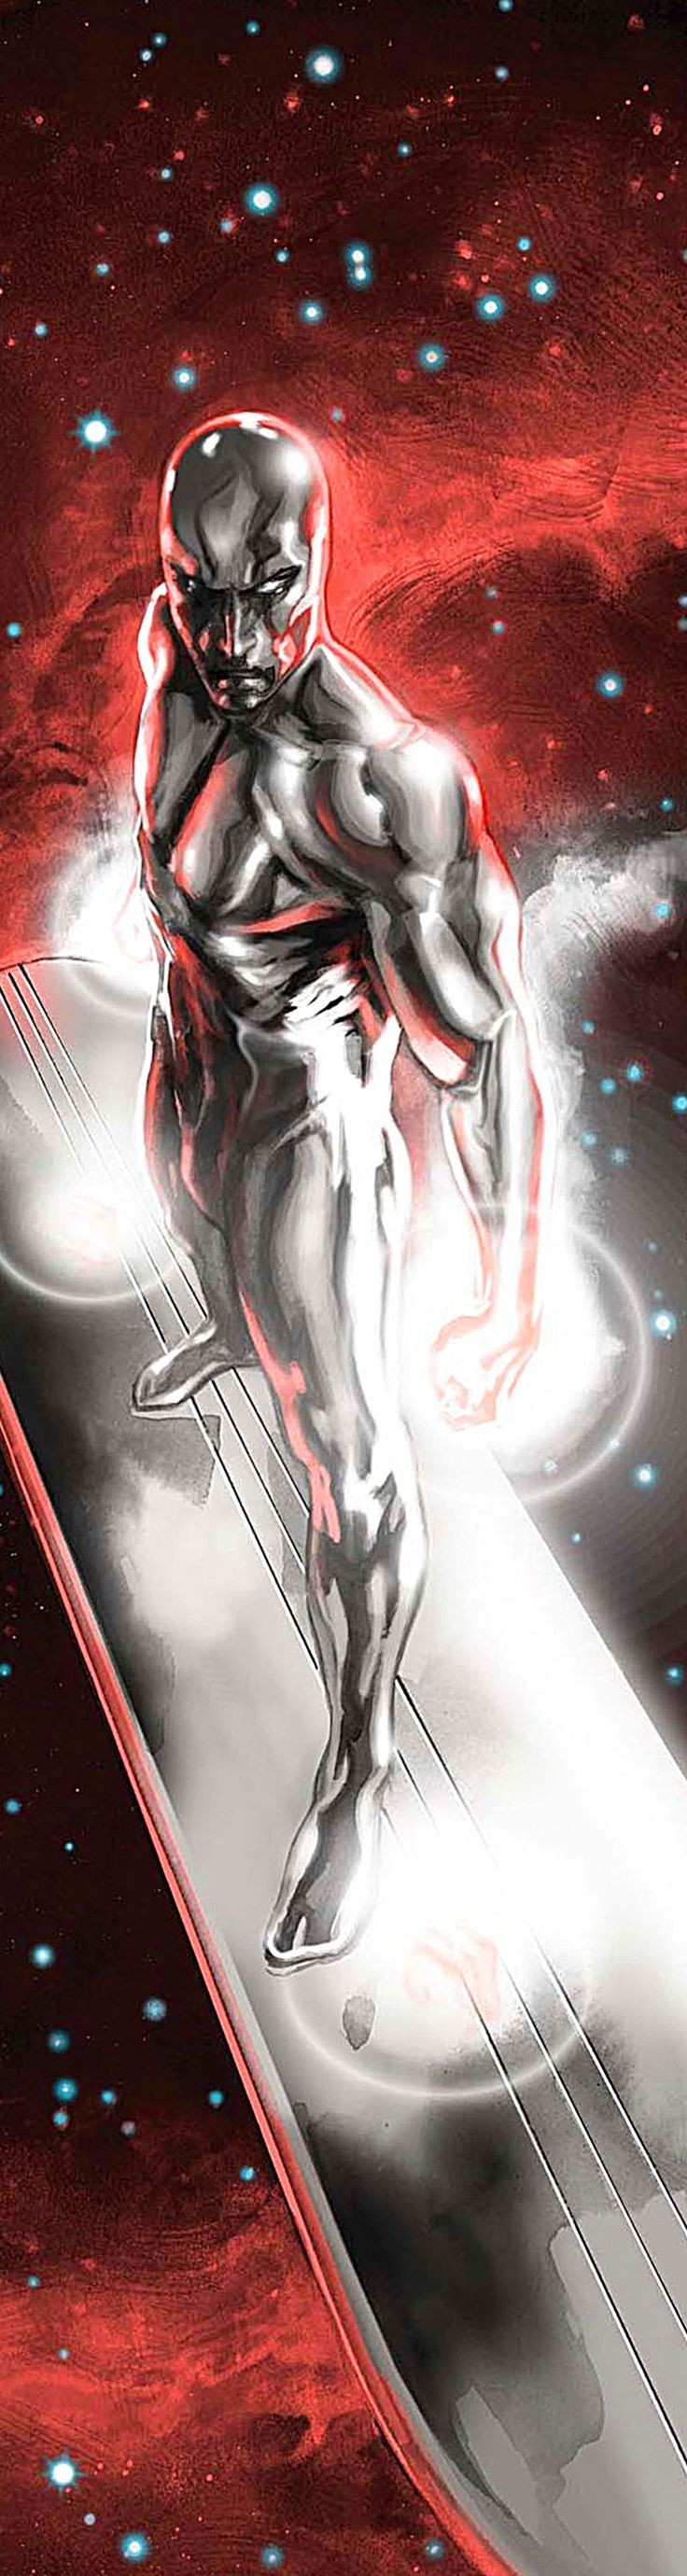 1000+ images about Silver Surfer on Pinterest | To share ...